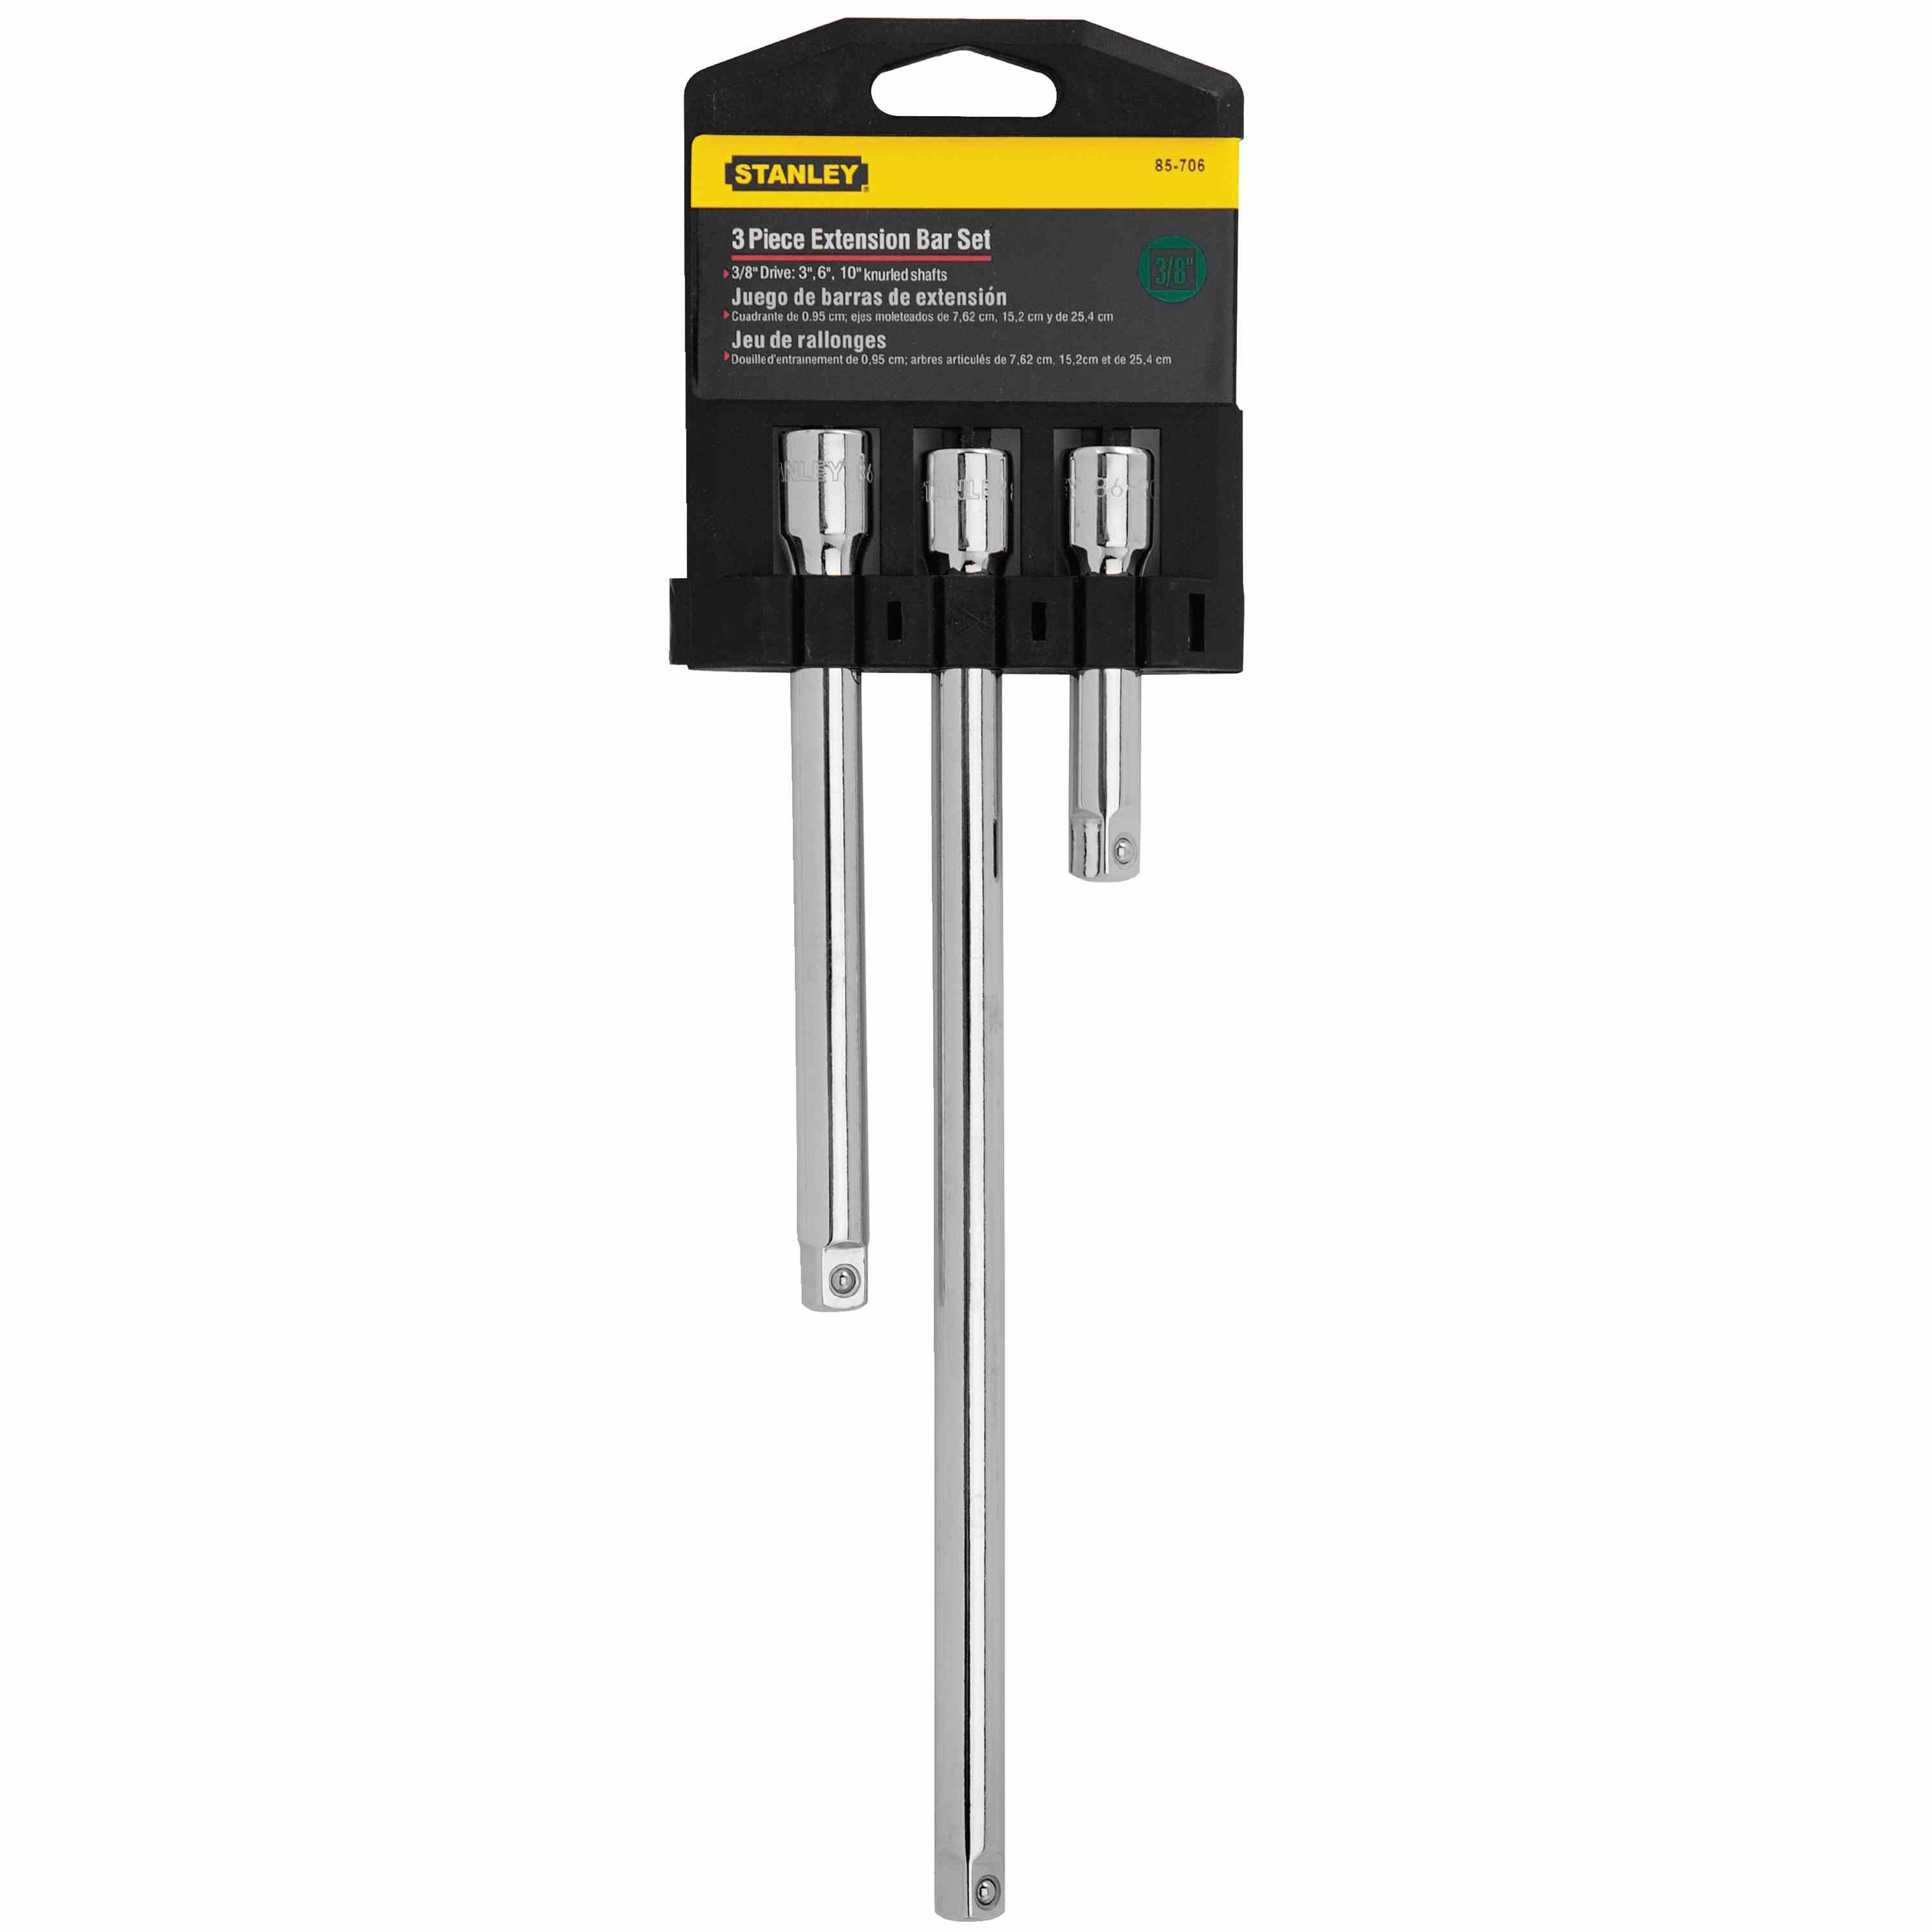 Stanley Tools - 3 pc Extension Bar Set - 85-706